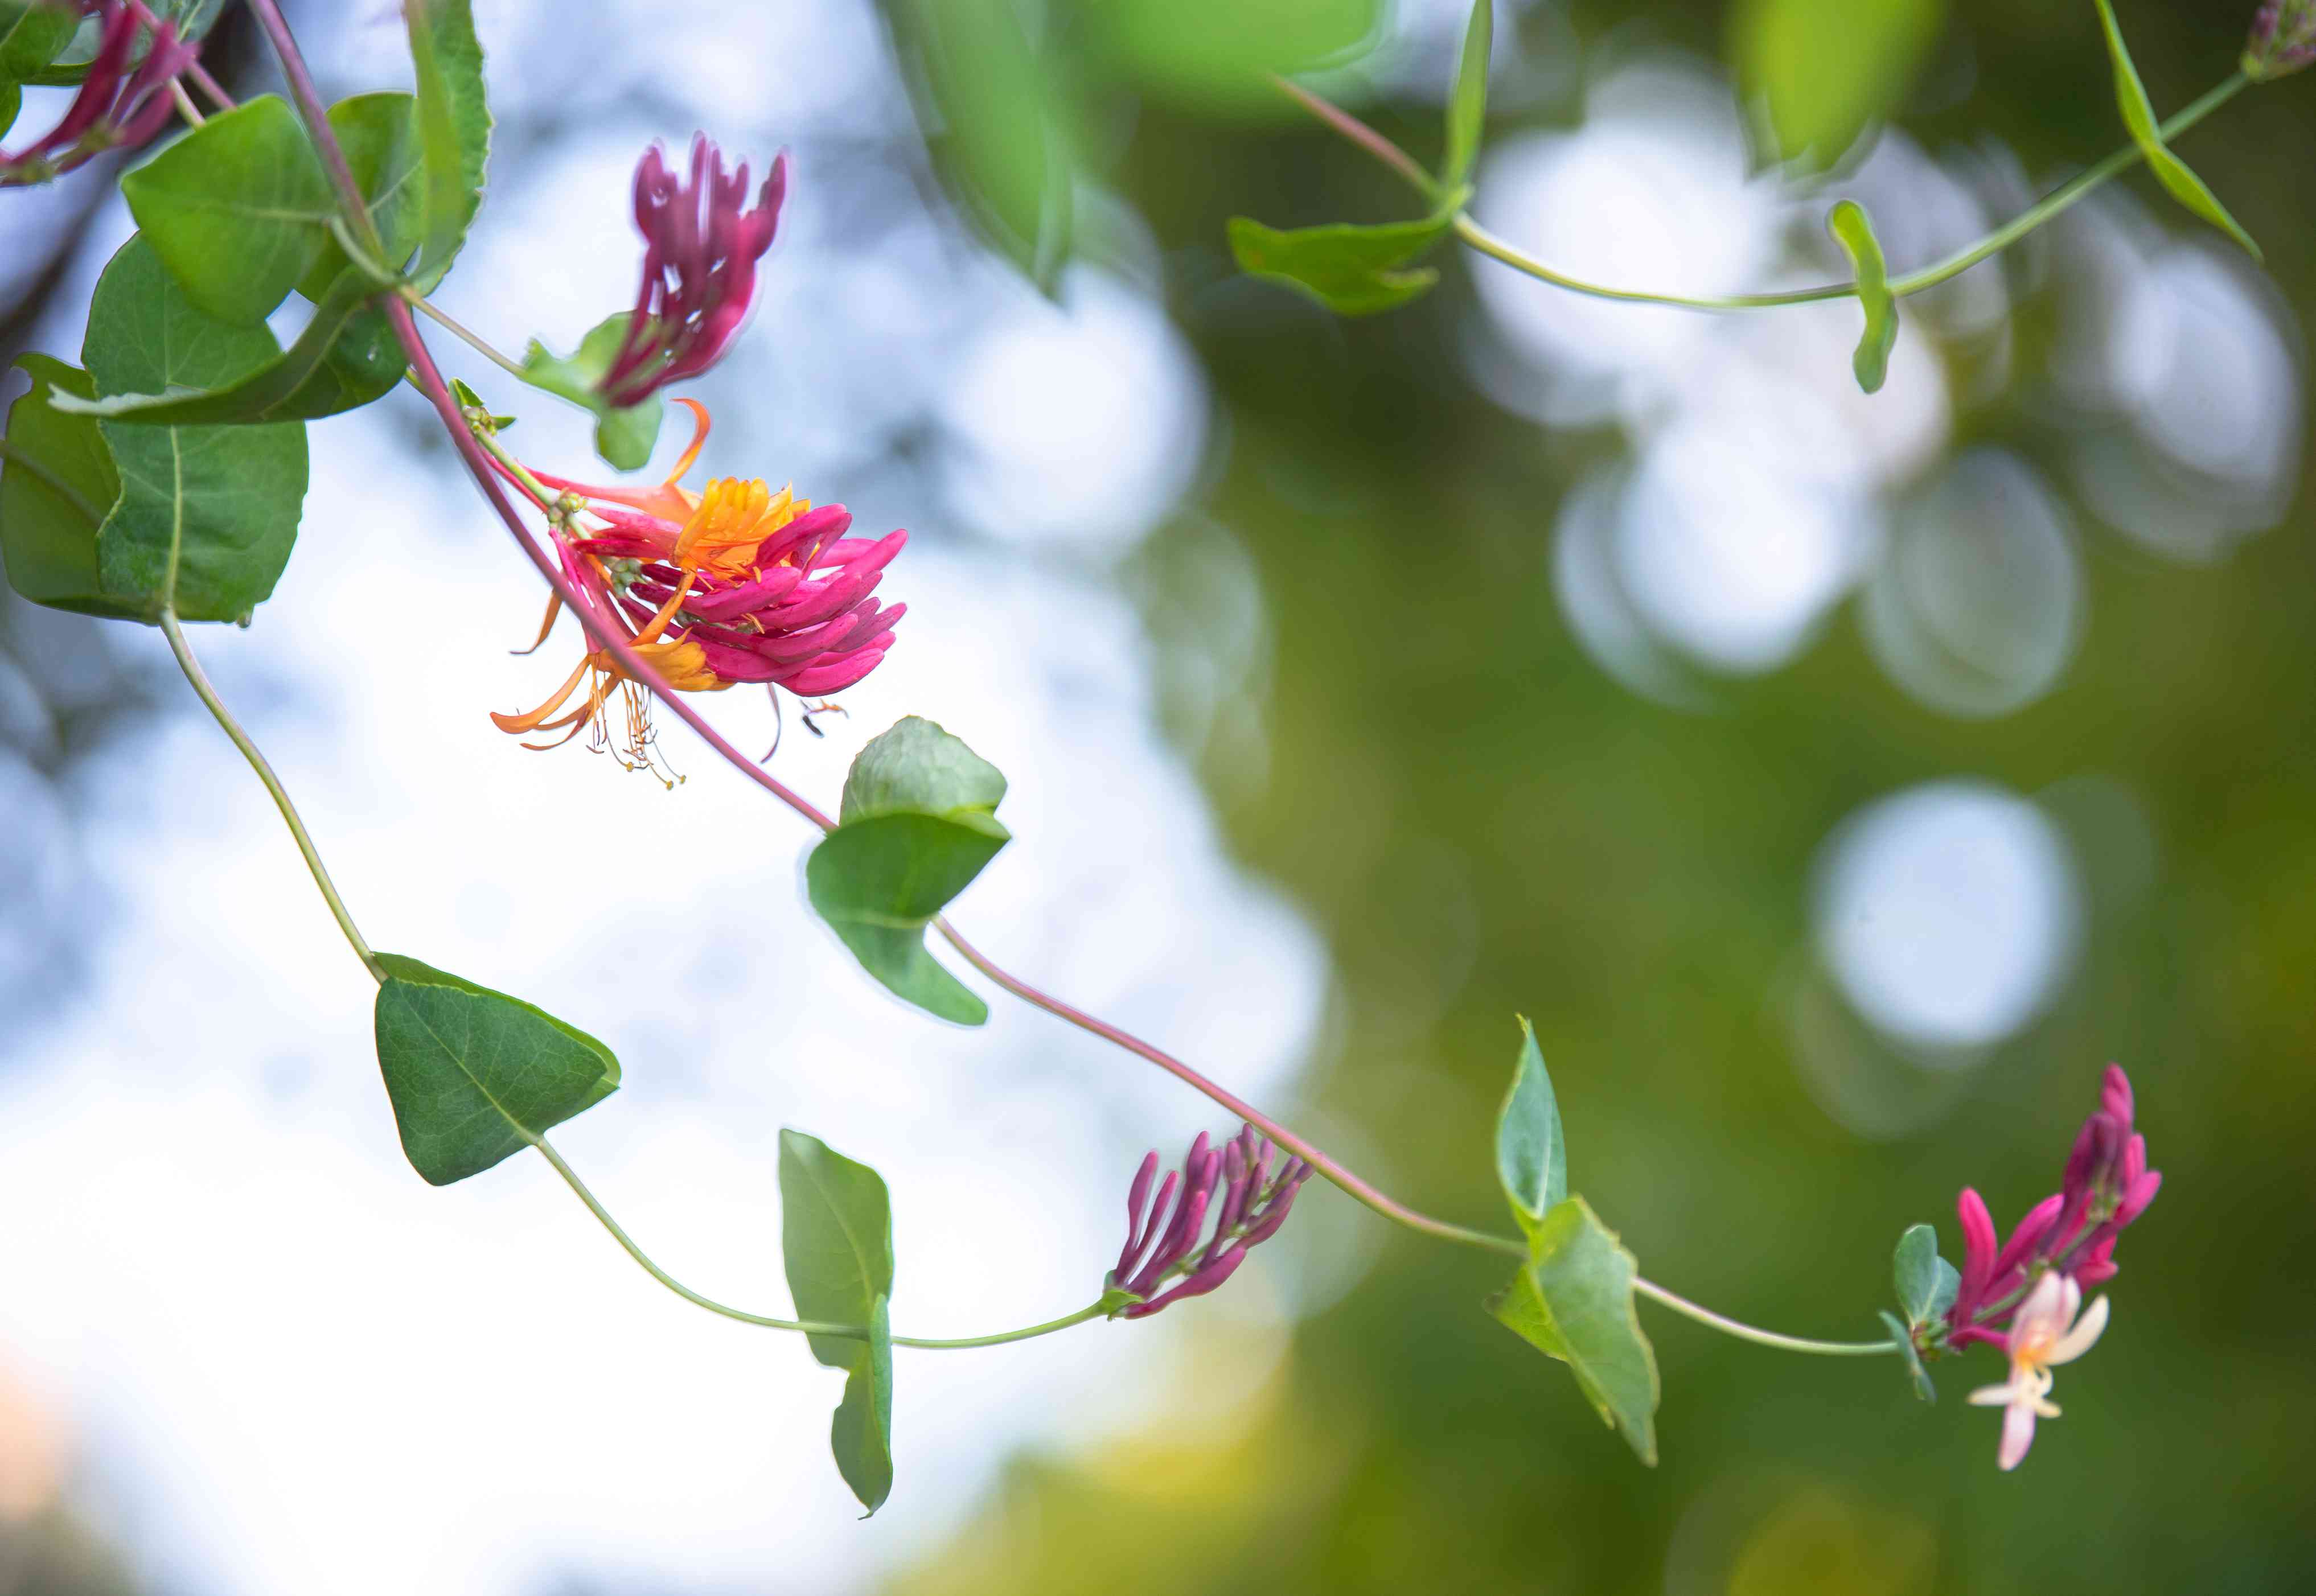 Common honeysuckle plant vine with tubular pink and orange flowers and leaves closeup